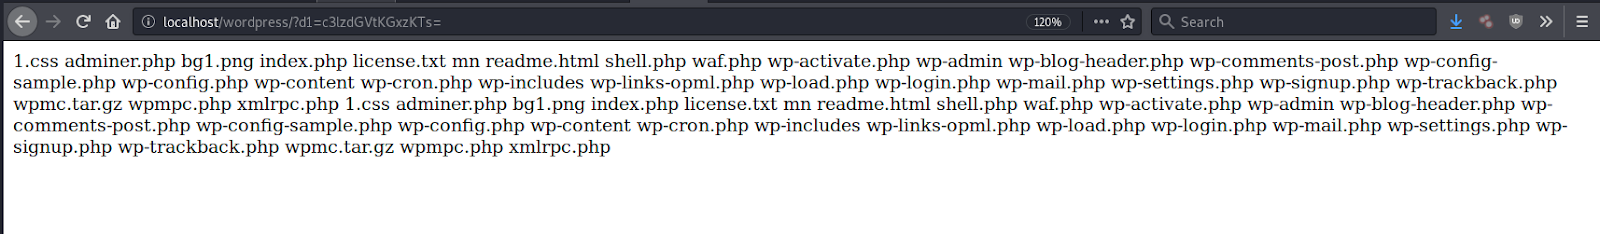 directory file listing malicious code